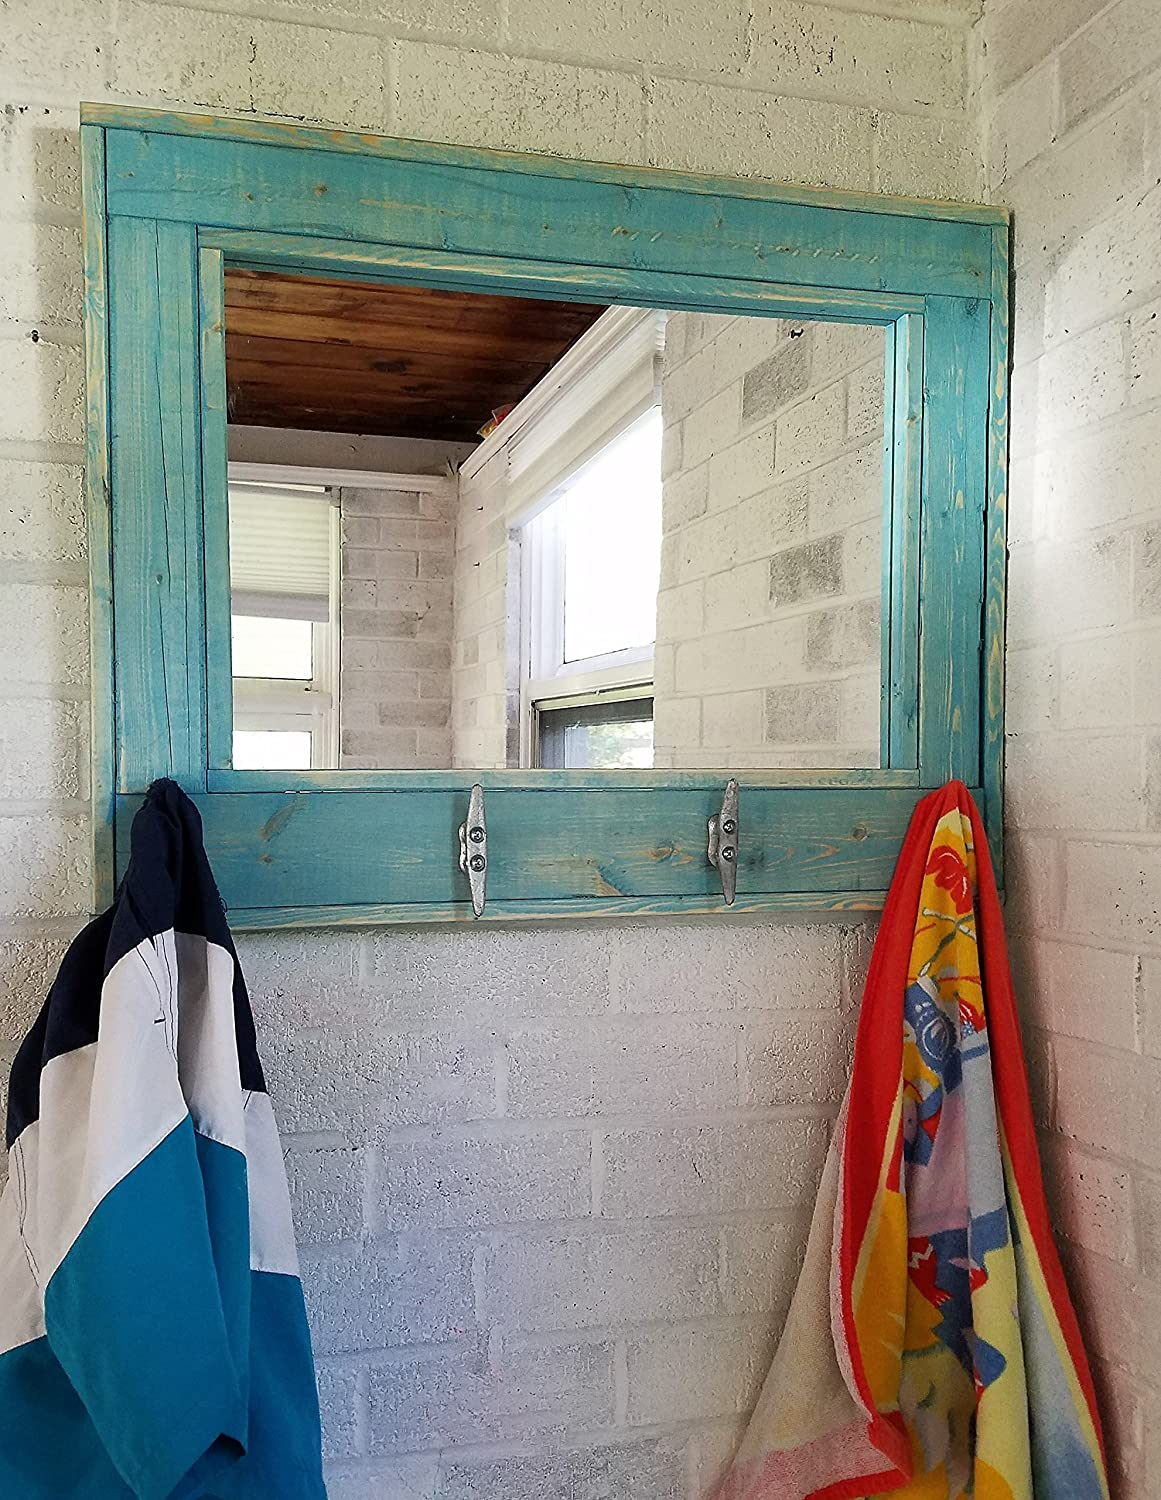 Renewed Décor Herringbone Style Beachhouse Mirror with boat cleats in Teal Stain - Large Wall Mirror - Rustic Modern Home - Home Decor - Mirror - Housewares - Woodwork - Frame - Stained Mirror